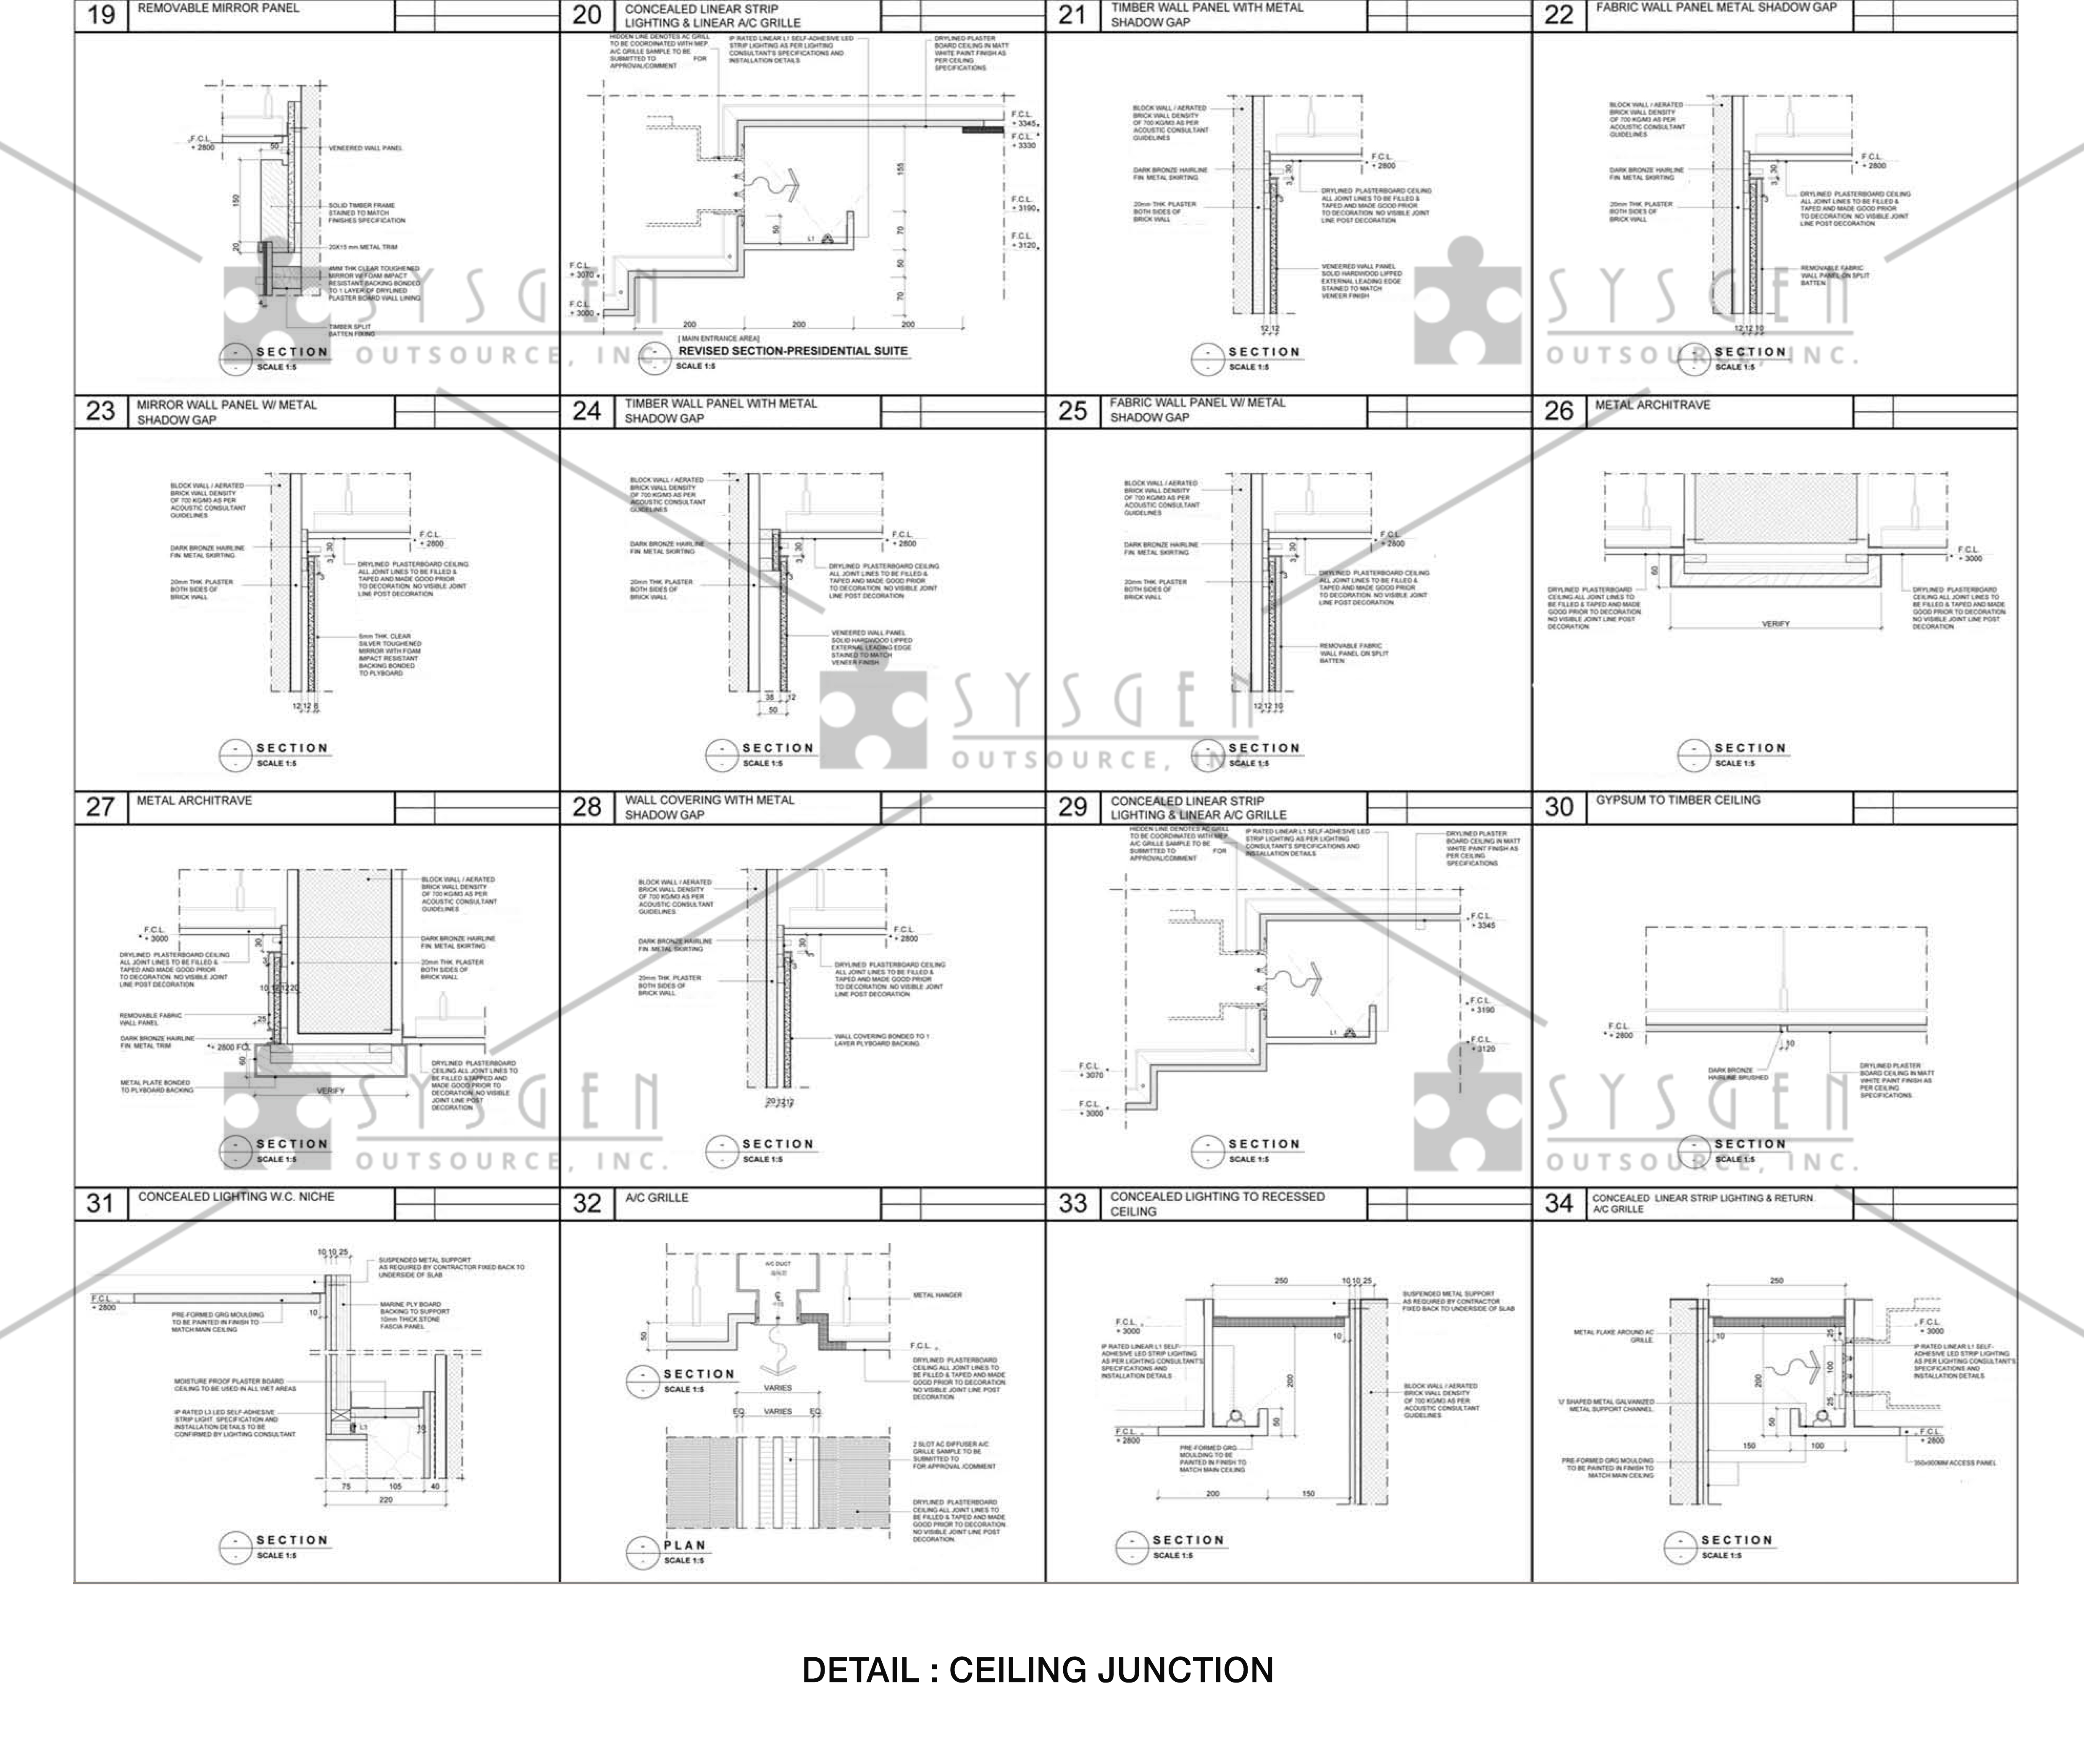 sysgen-outsource-cad-outsourcing-services-interior-design-shop-drawing2